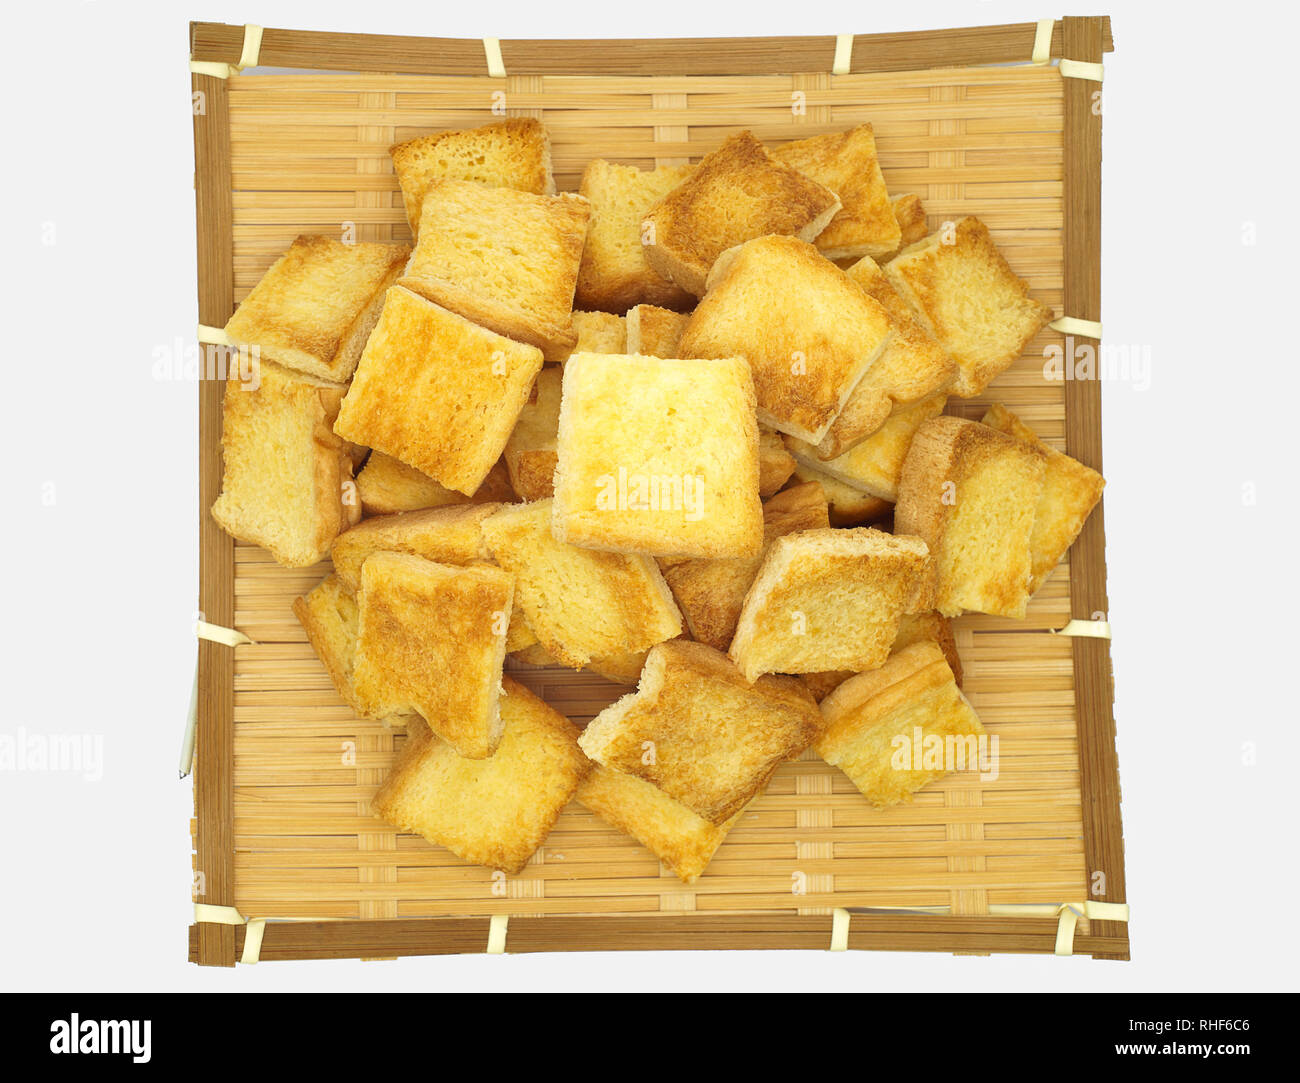 Toast bread on the bamboo fabricate.Isolated on white background. - Stock Image